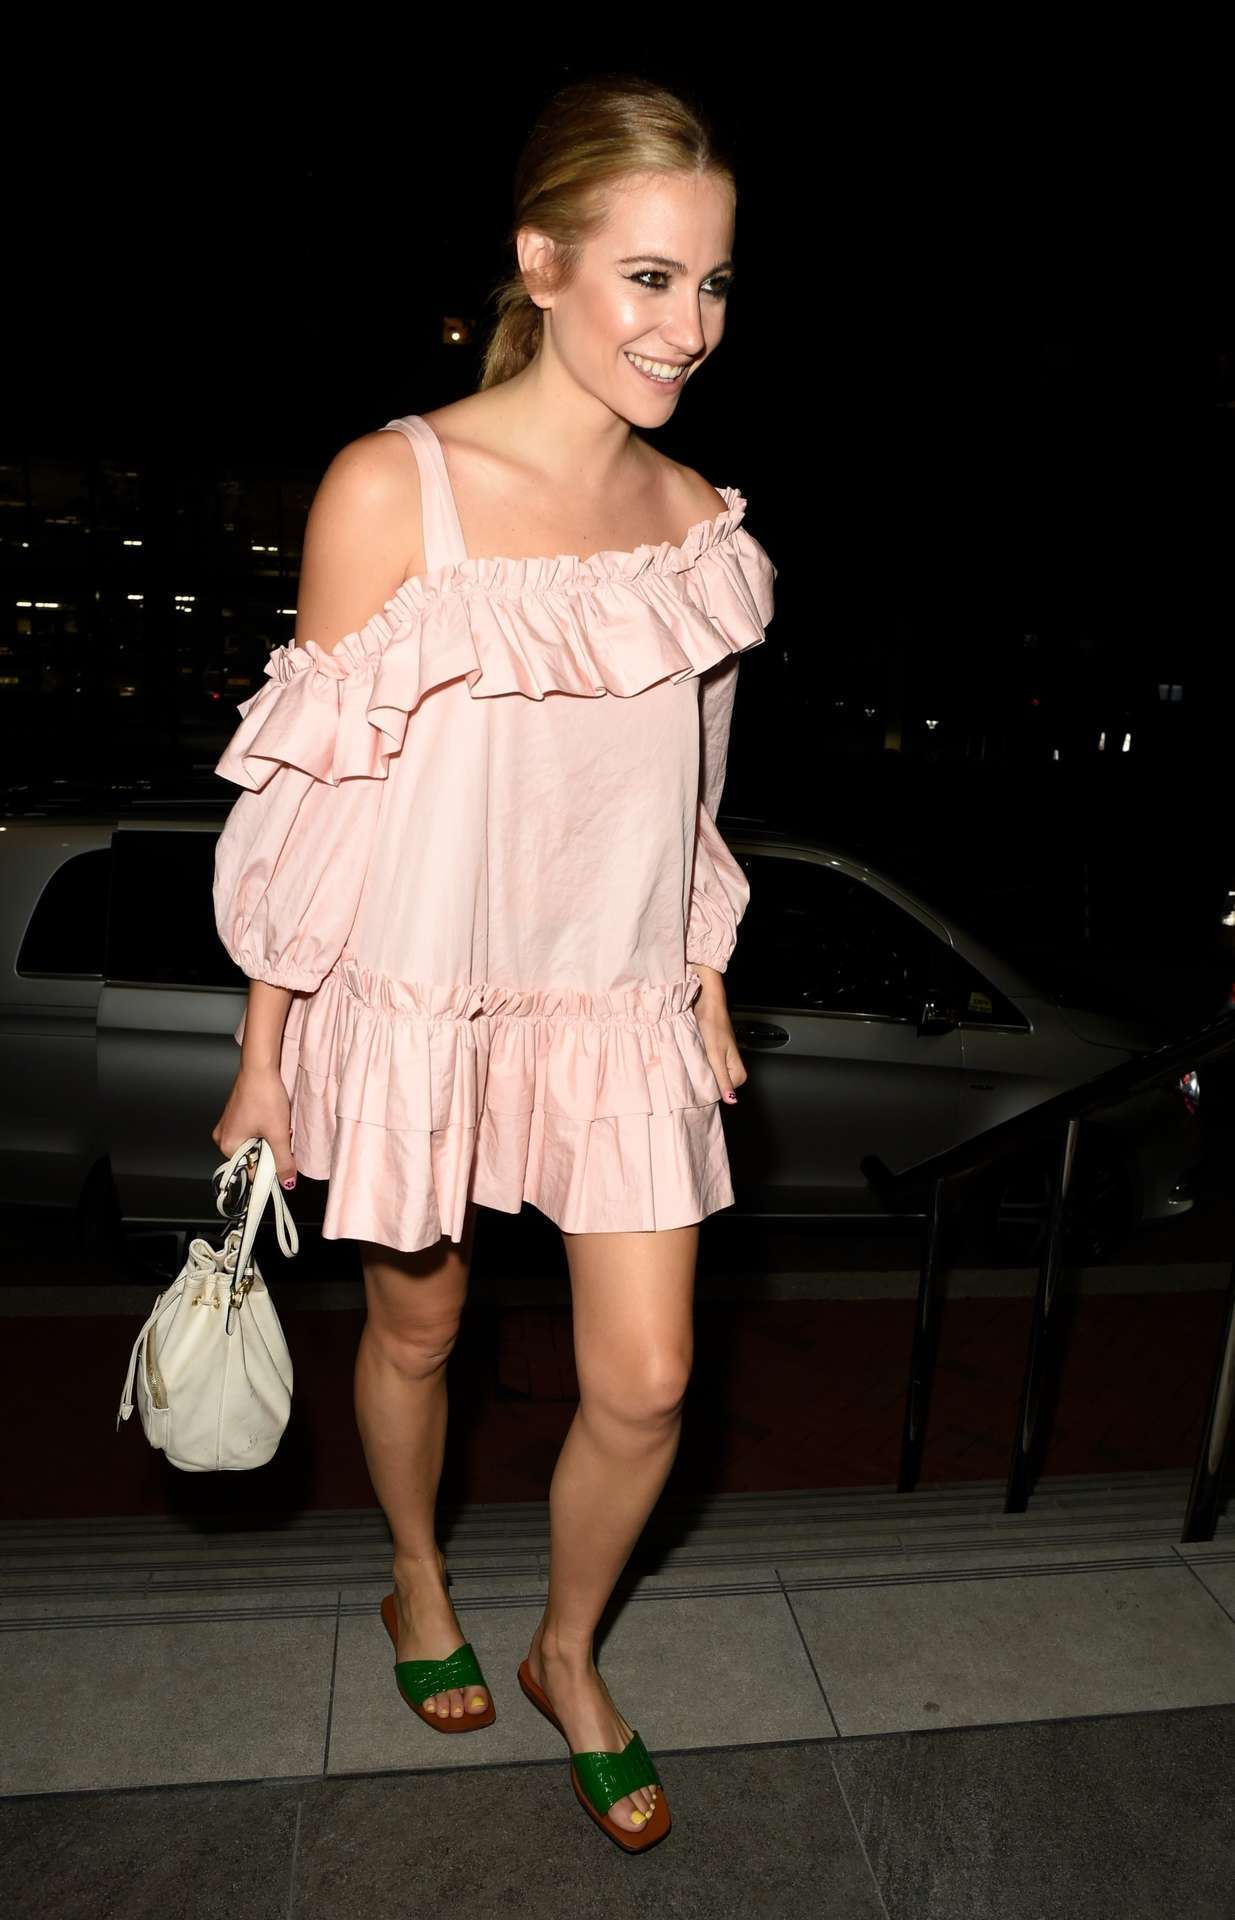 Pixie Lott Returning to her Hotel in Manchester